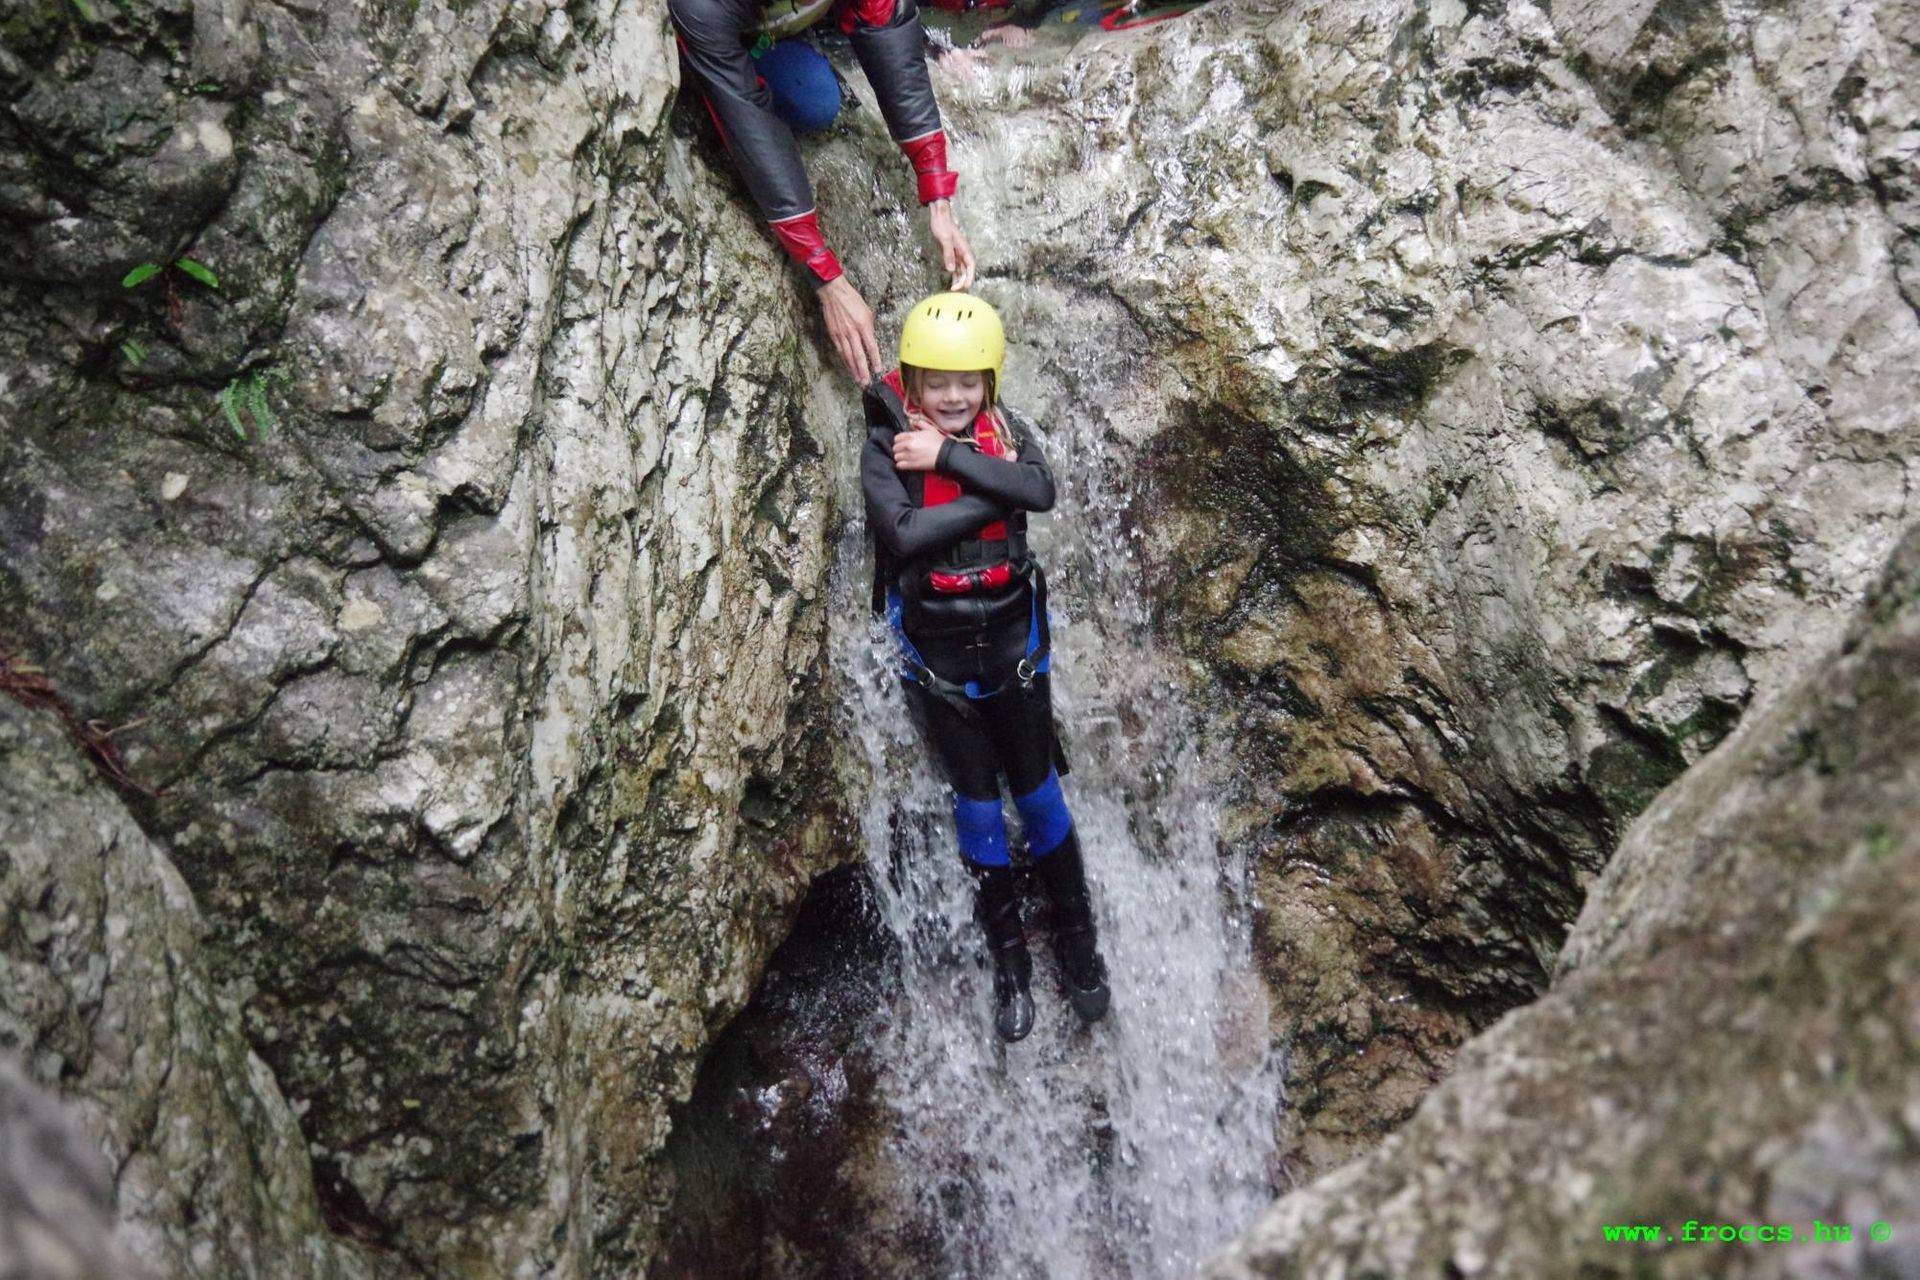 Canyoning in Susec Bovec, Slovenia #b6f29686-6d80-42bb-9222-056549c95e7e